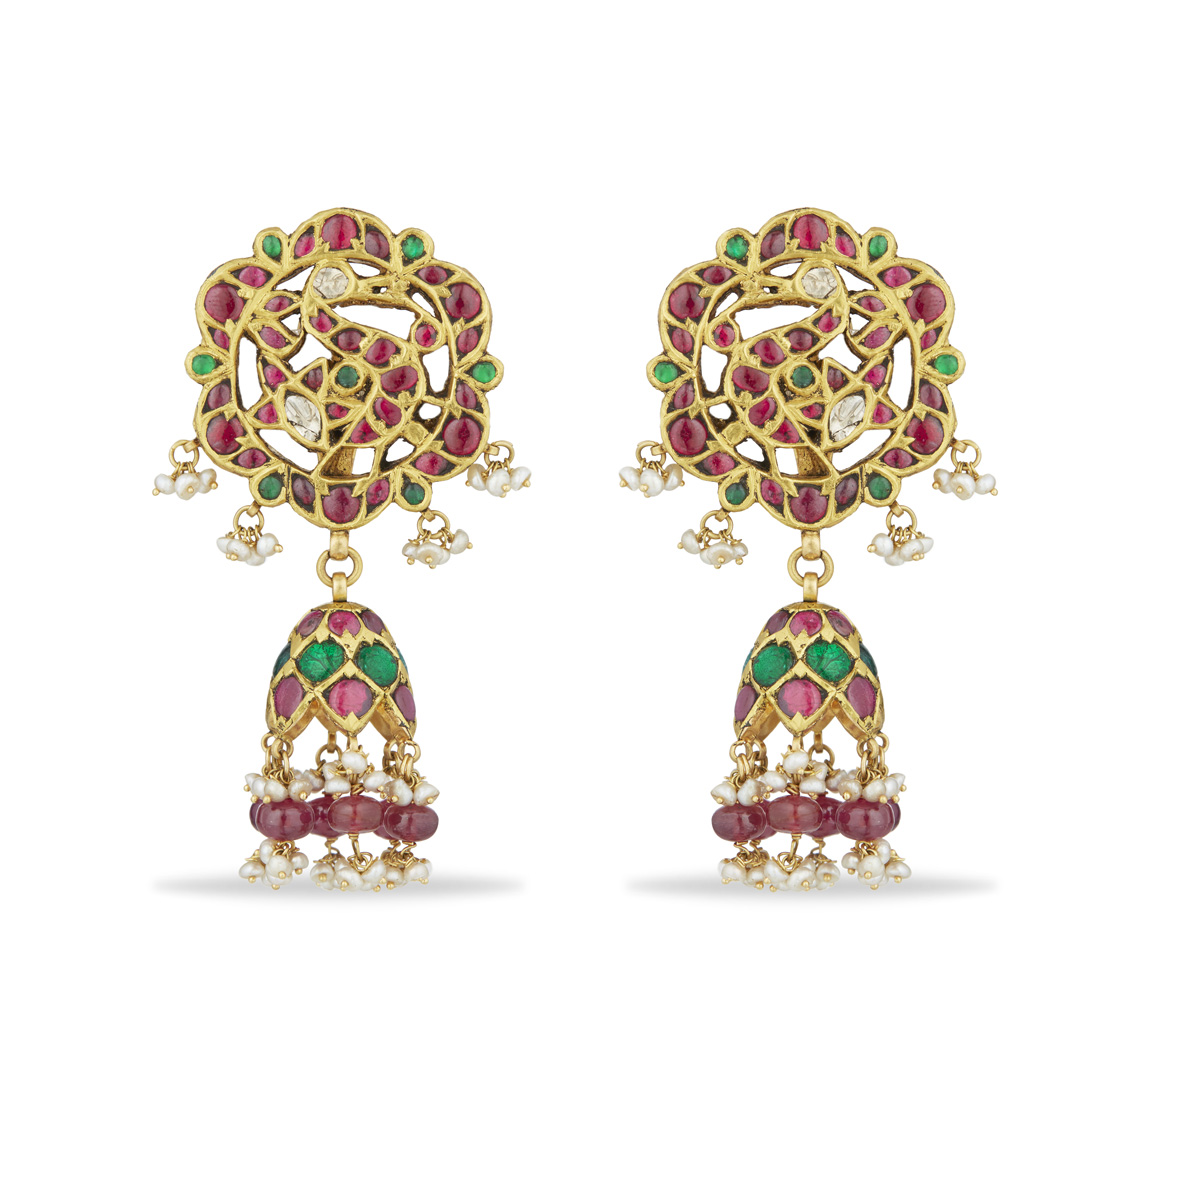 The Khushi Dhaga Earrings